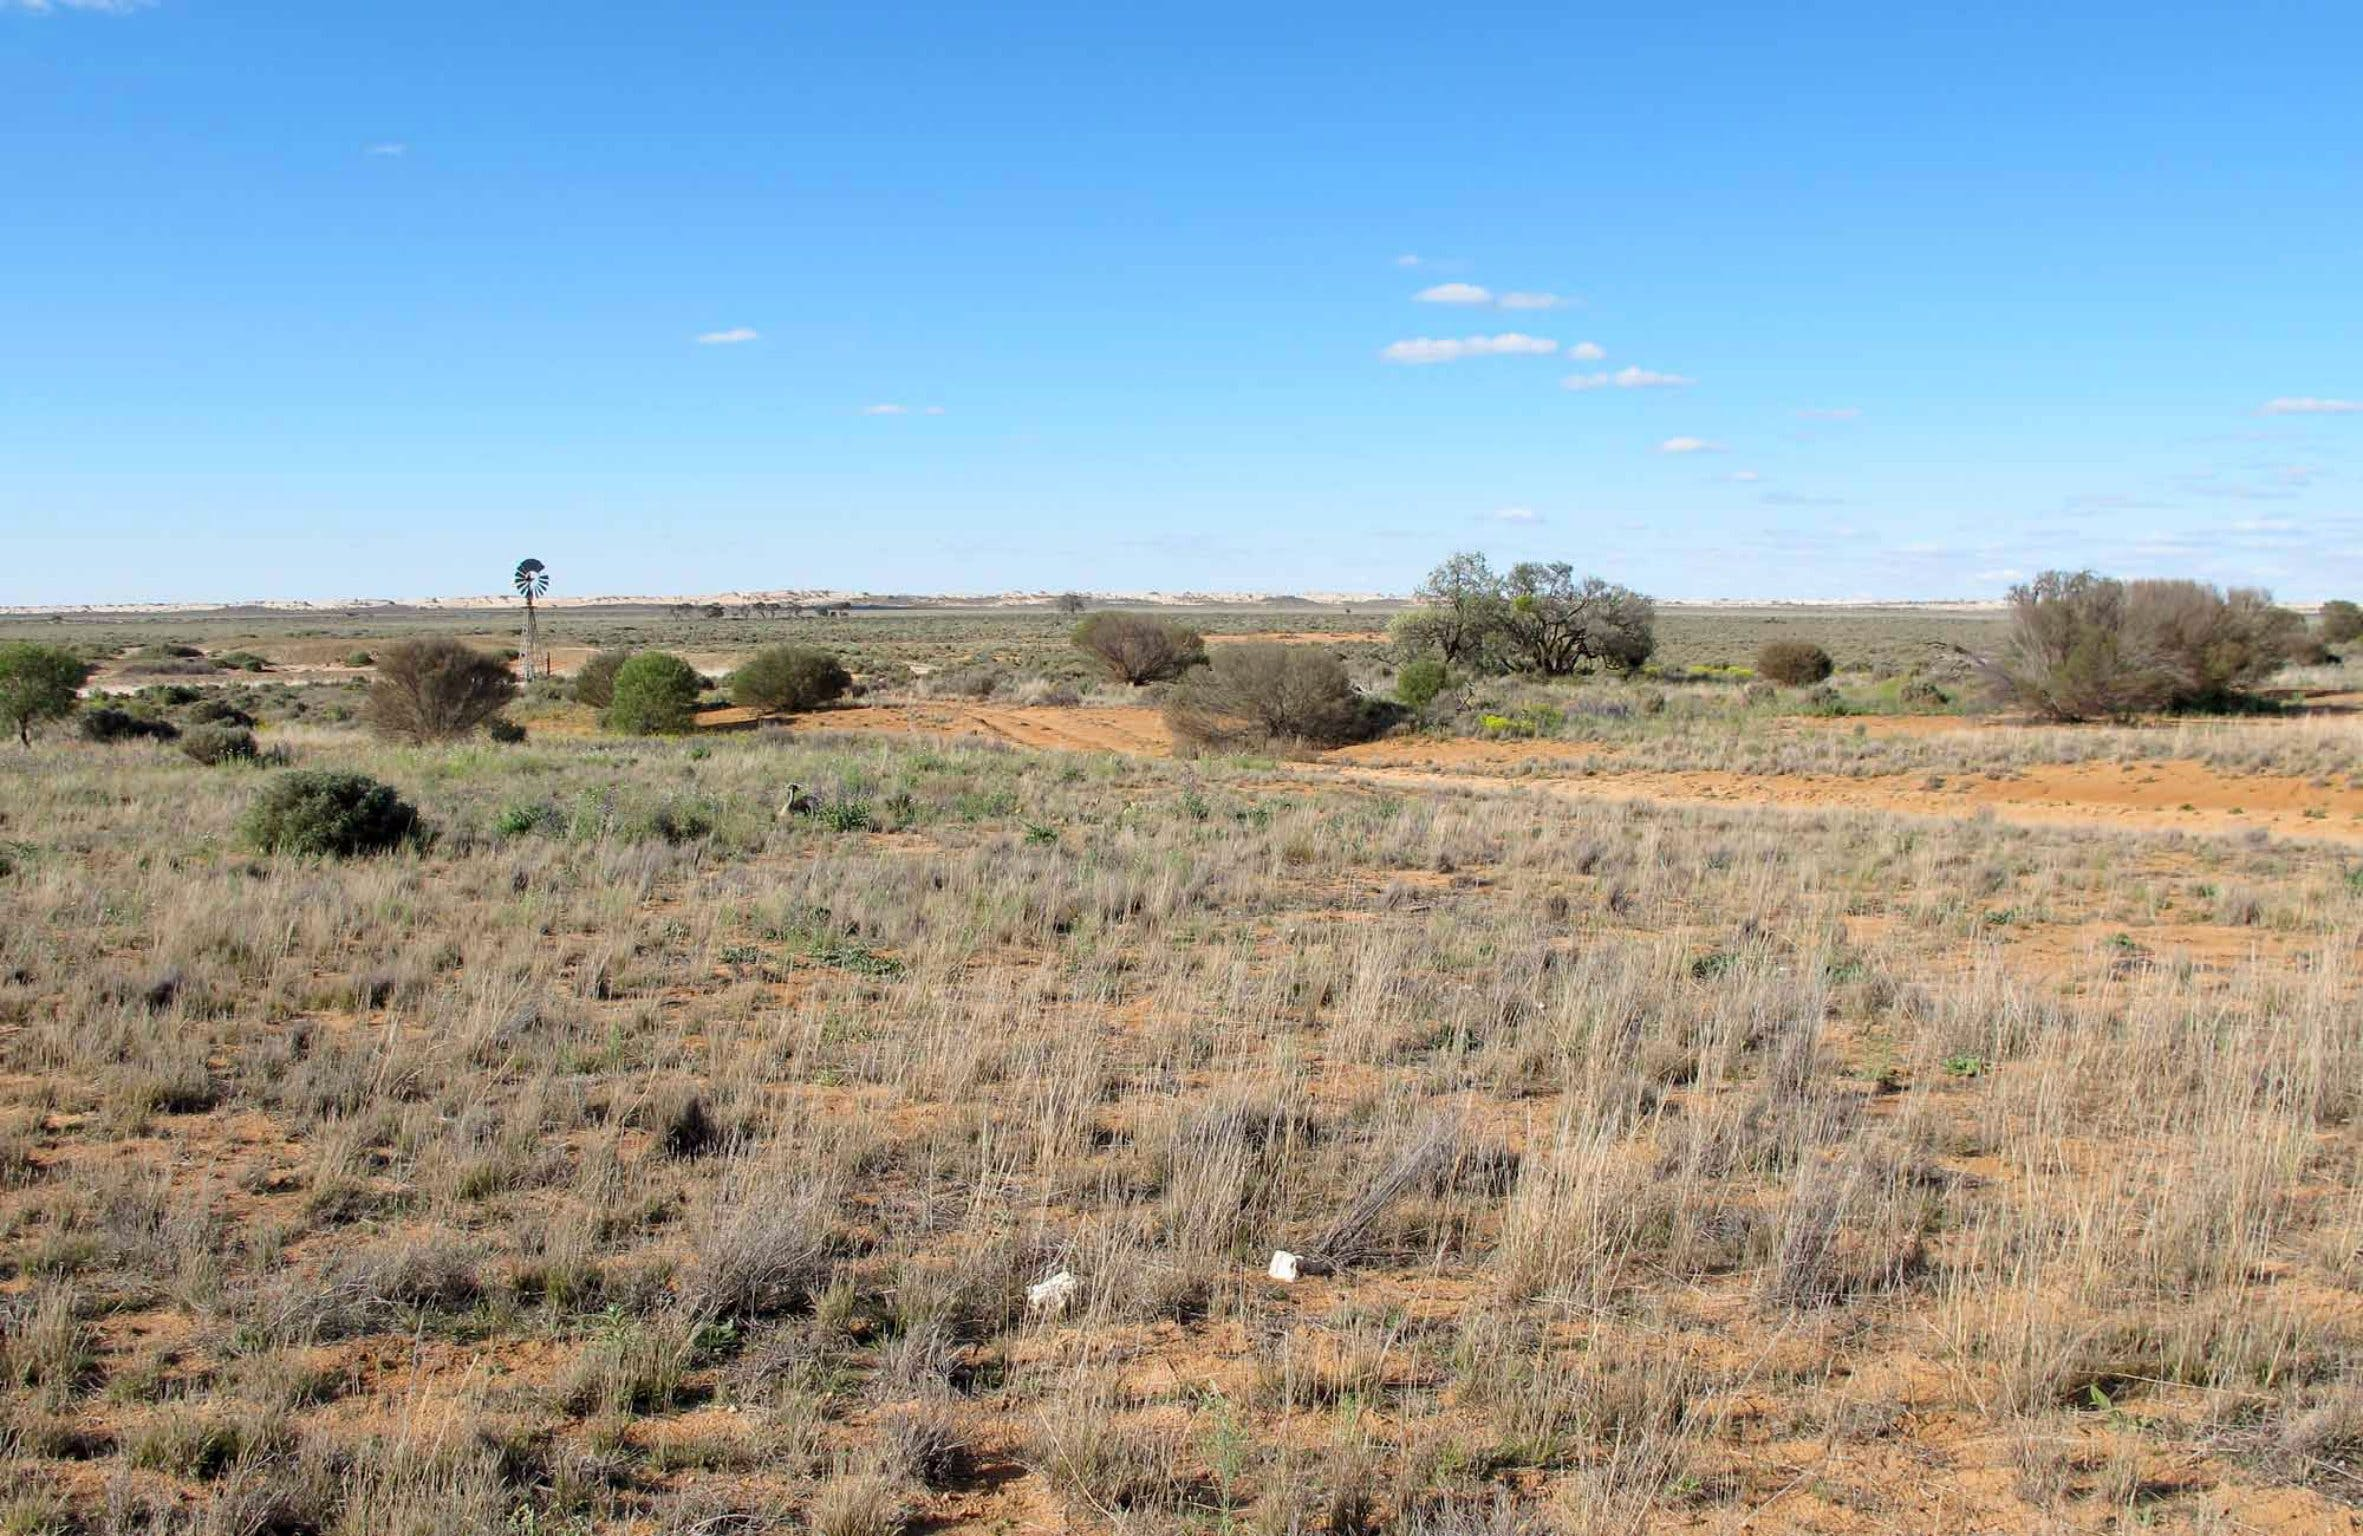 Mungo Self-guided Drive Tour